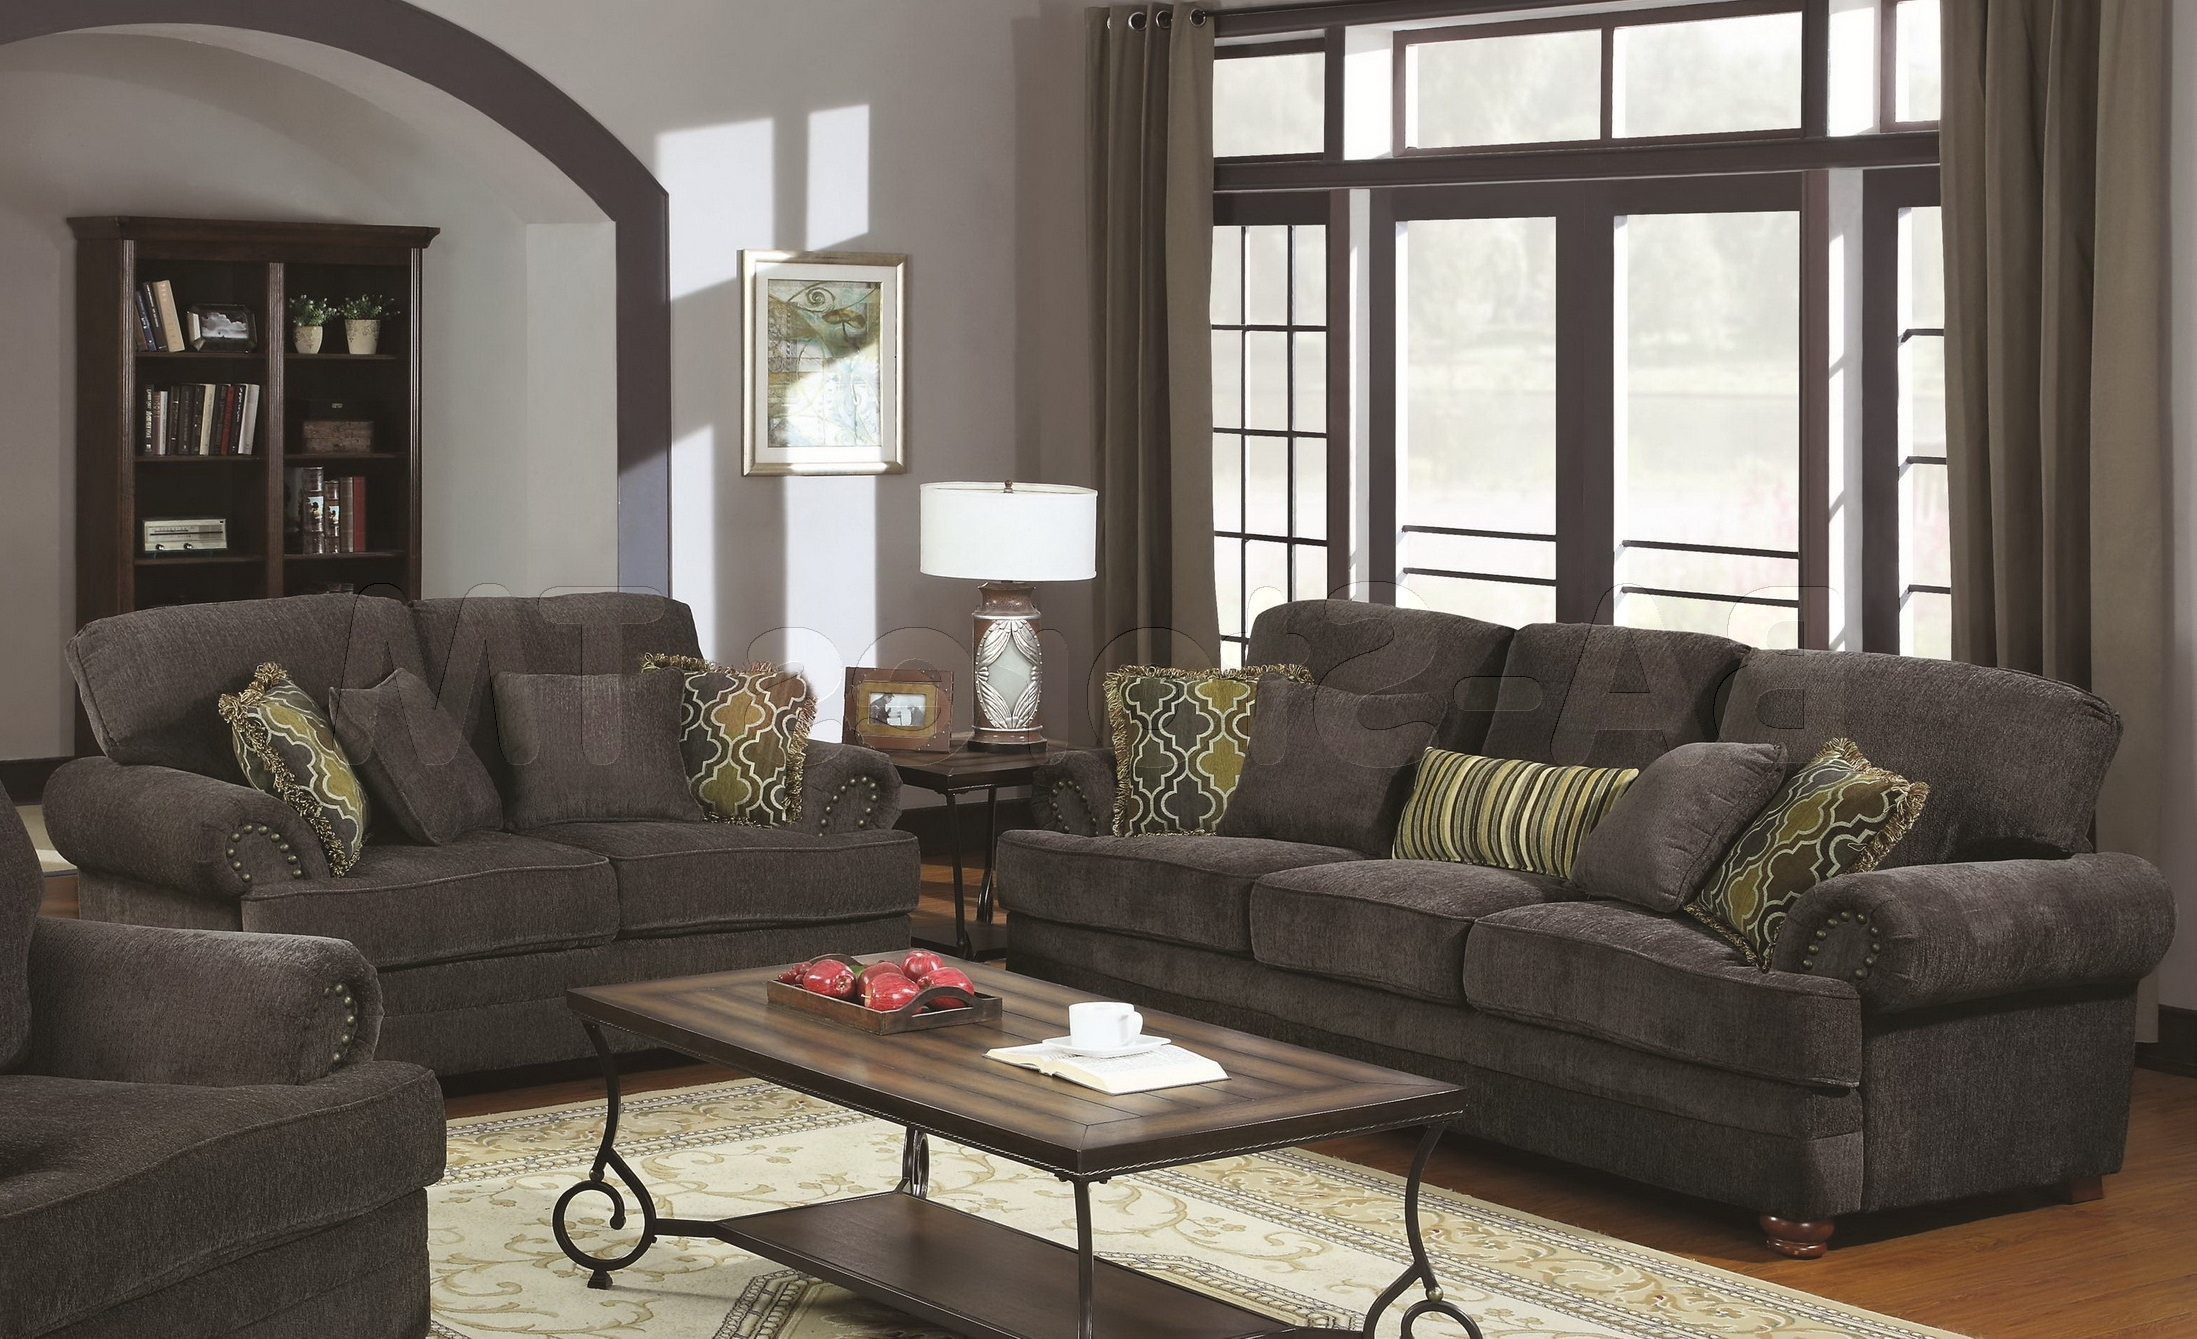 Overstuffed Sofas And Chairs Inside Newest Grey Sofa Setcolton Smokey Grey Chenille 2 Pc Sofa Set–Sofa And (View 14 of 20)